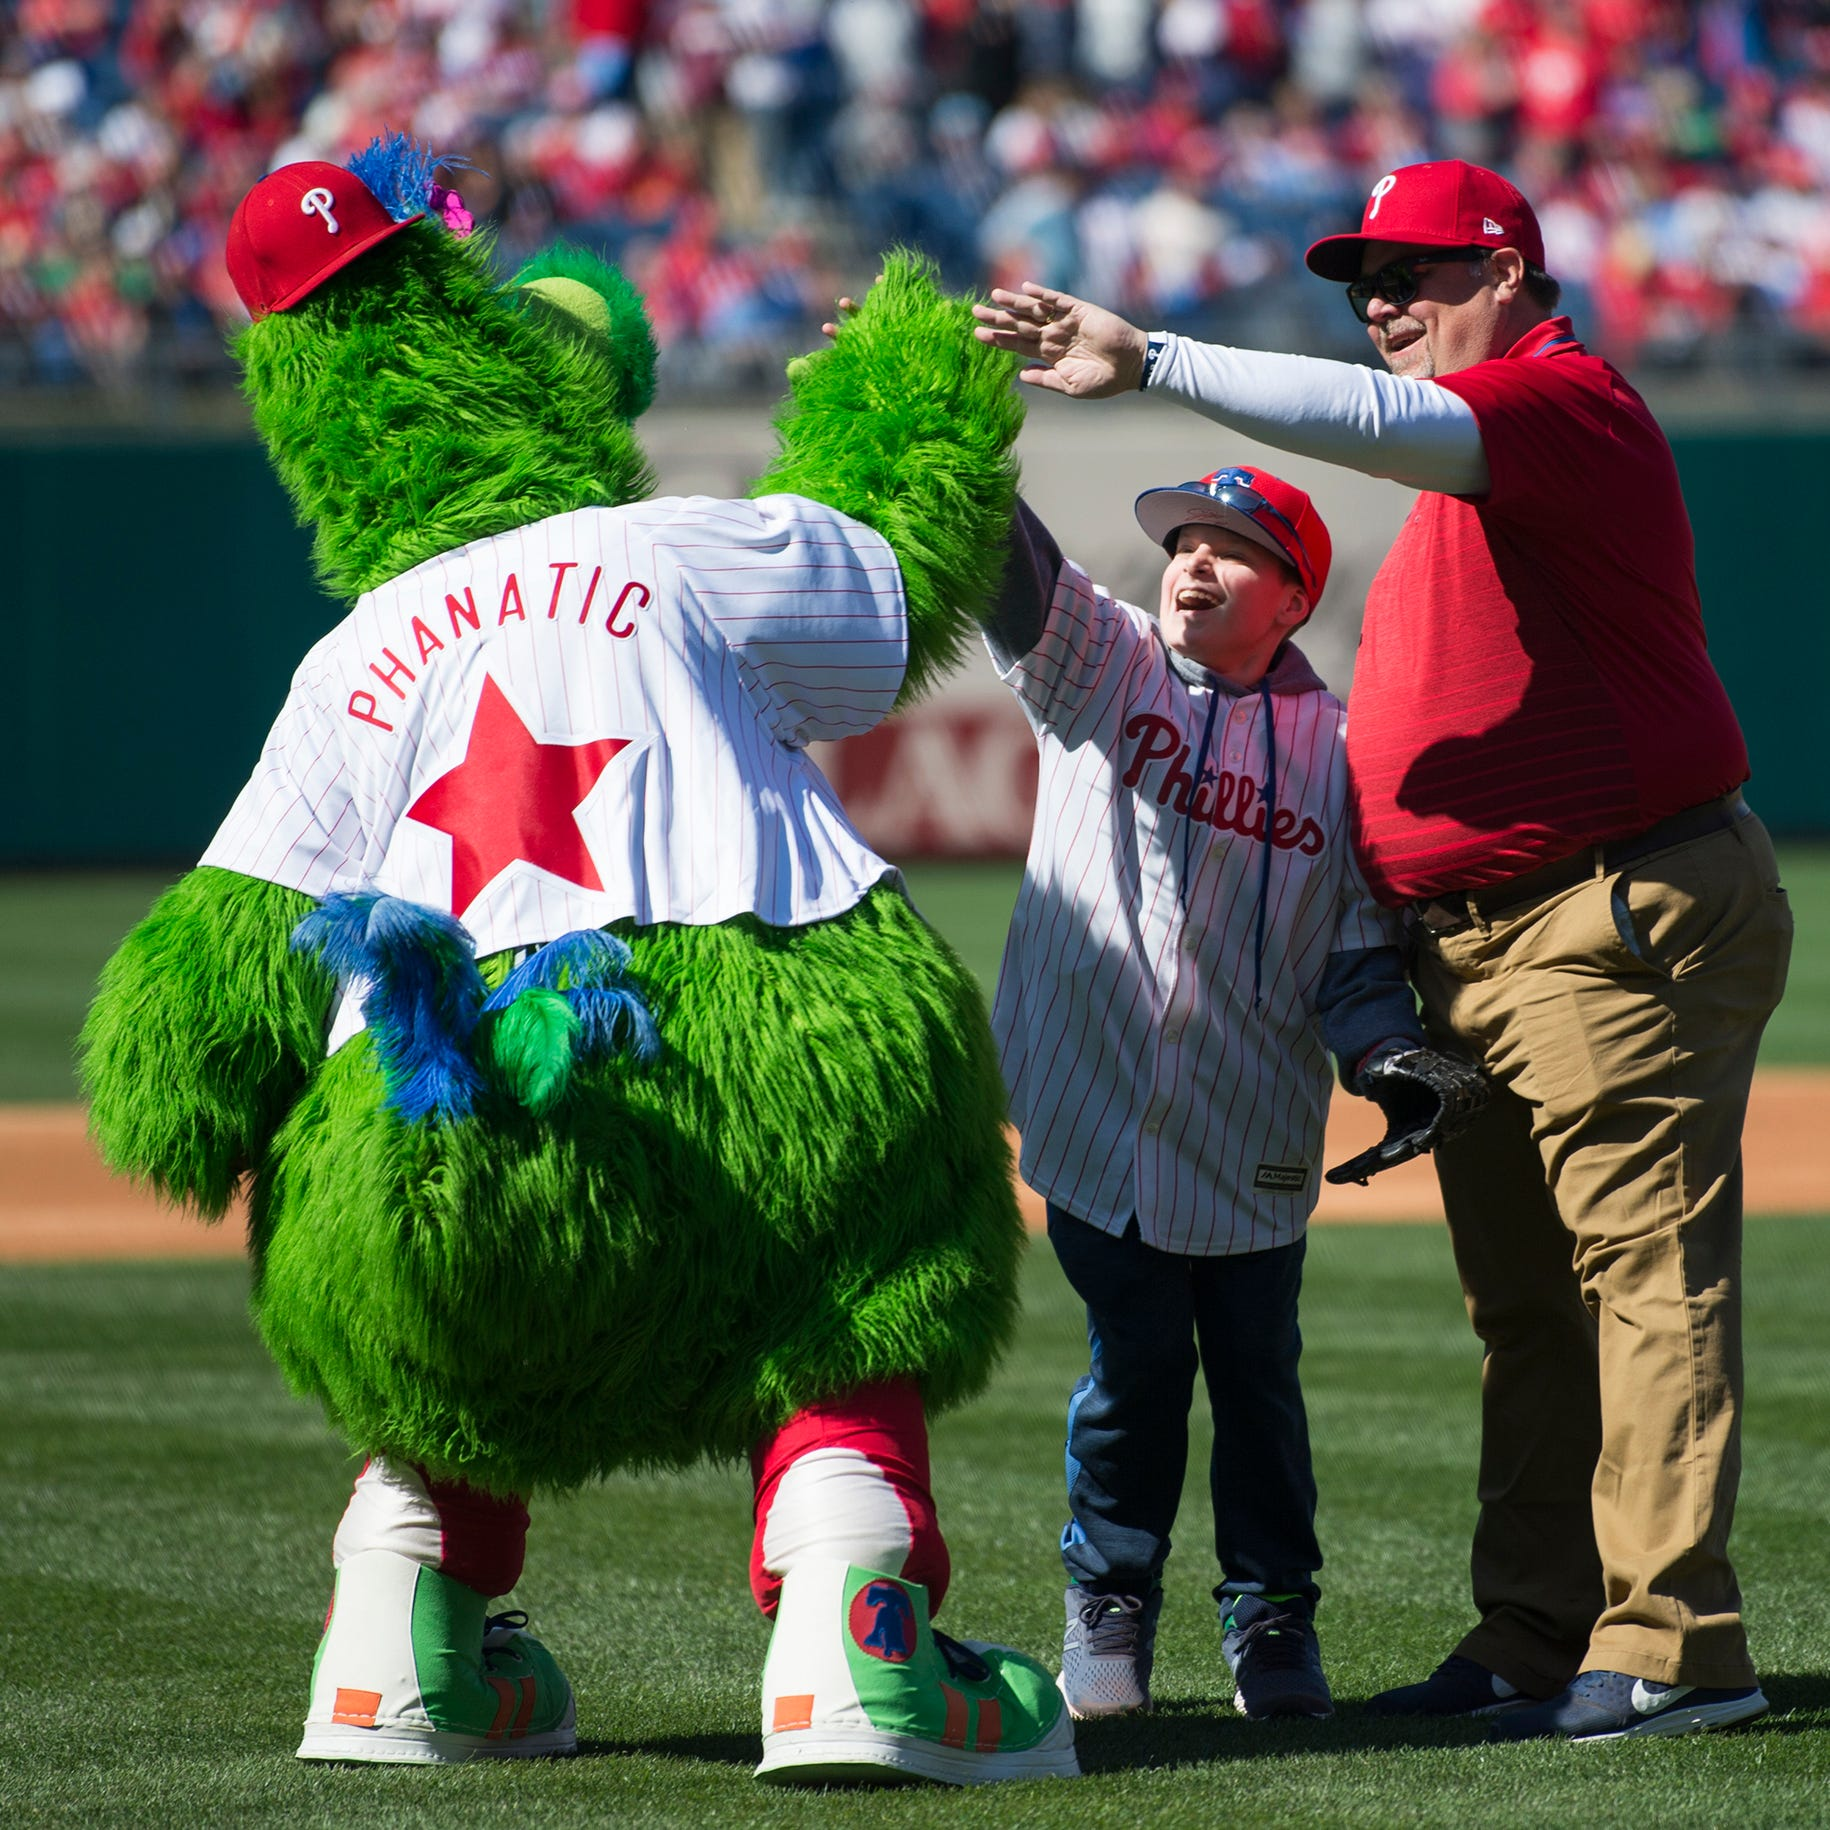 South Jersey fourth-grader tosses Opening Day first pitch at Phillies game